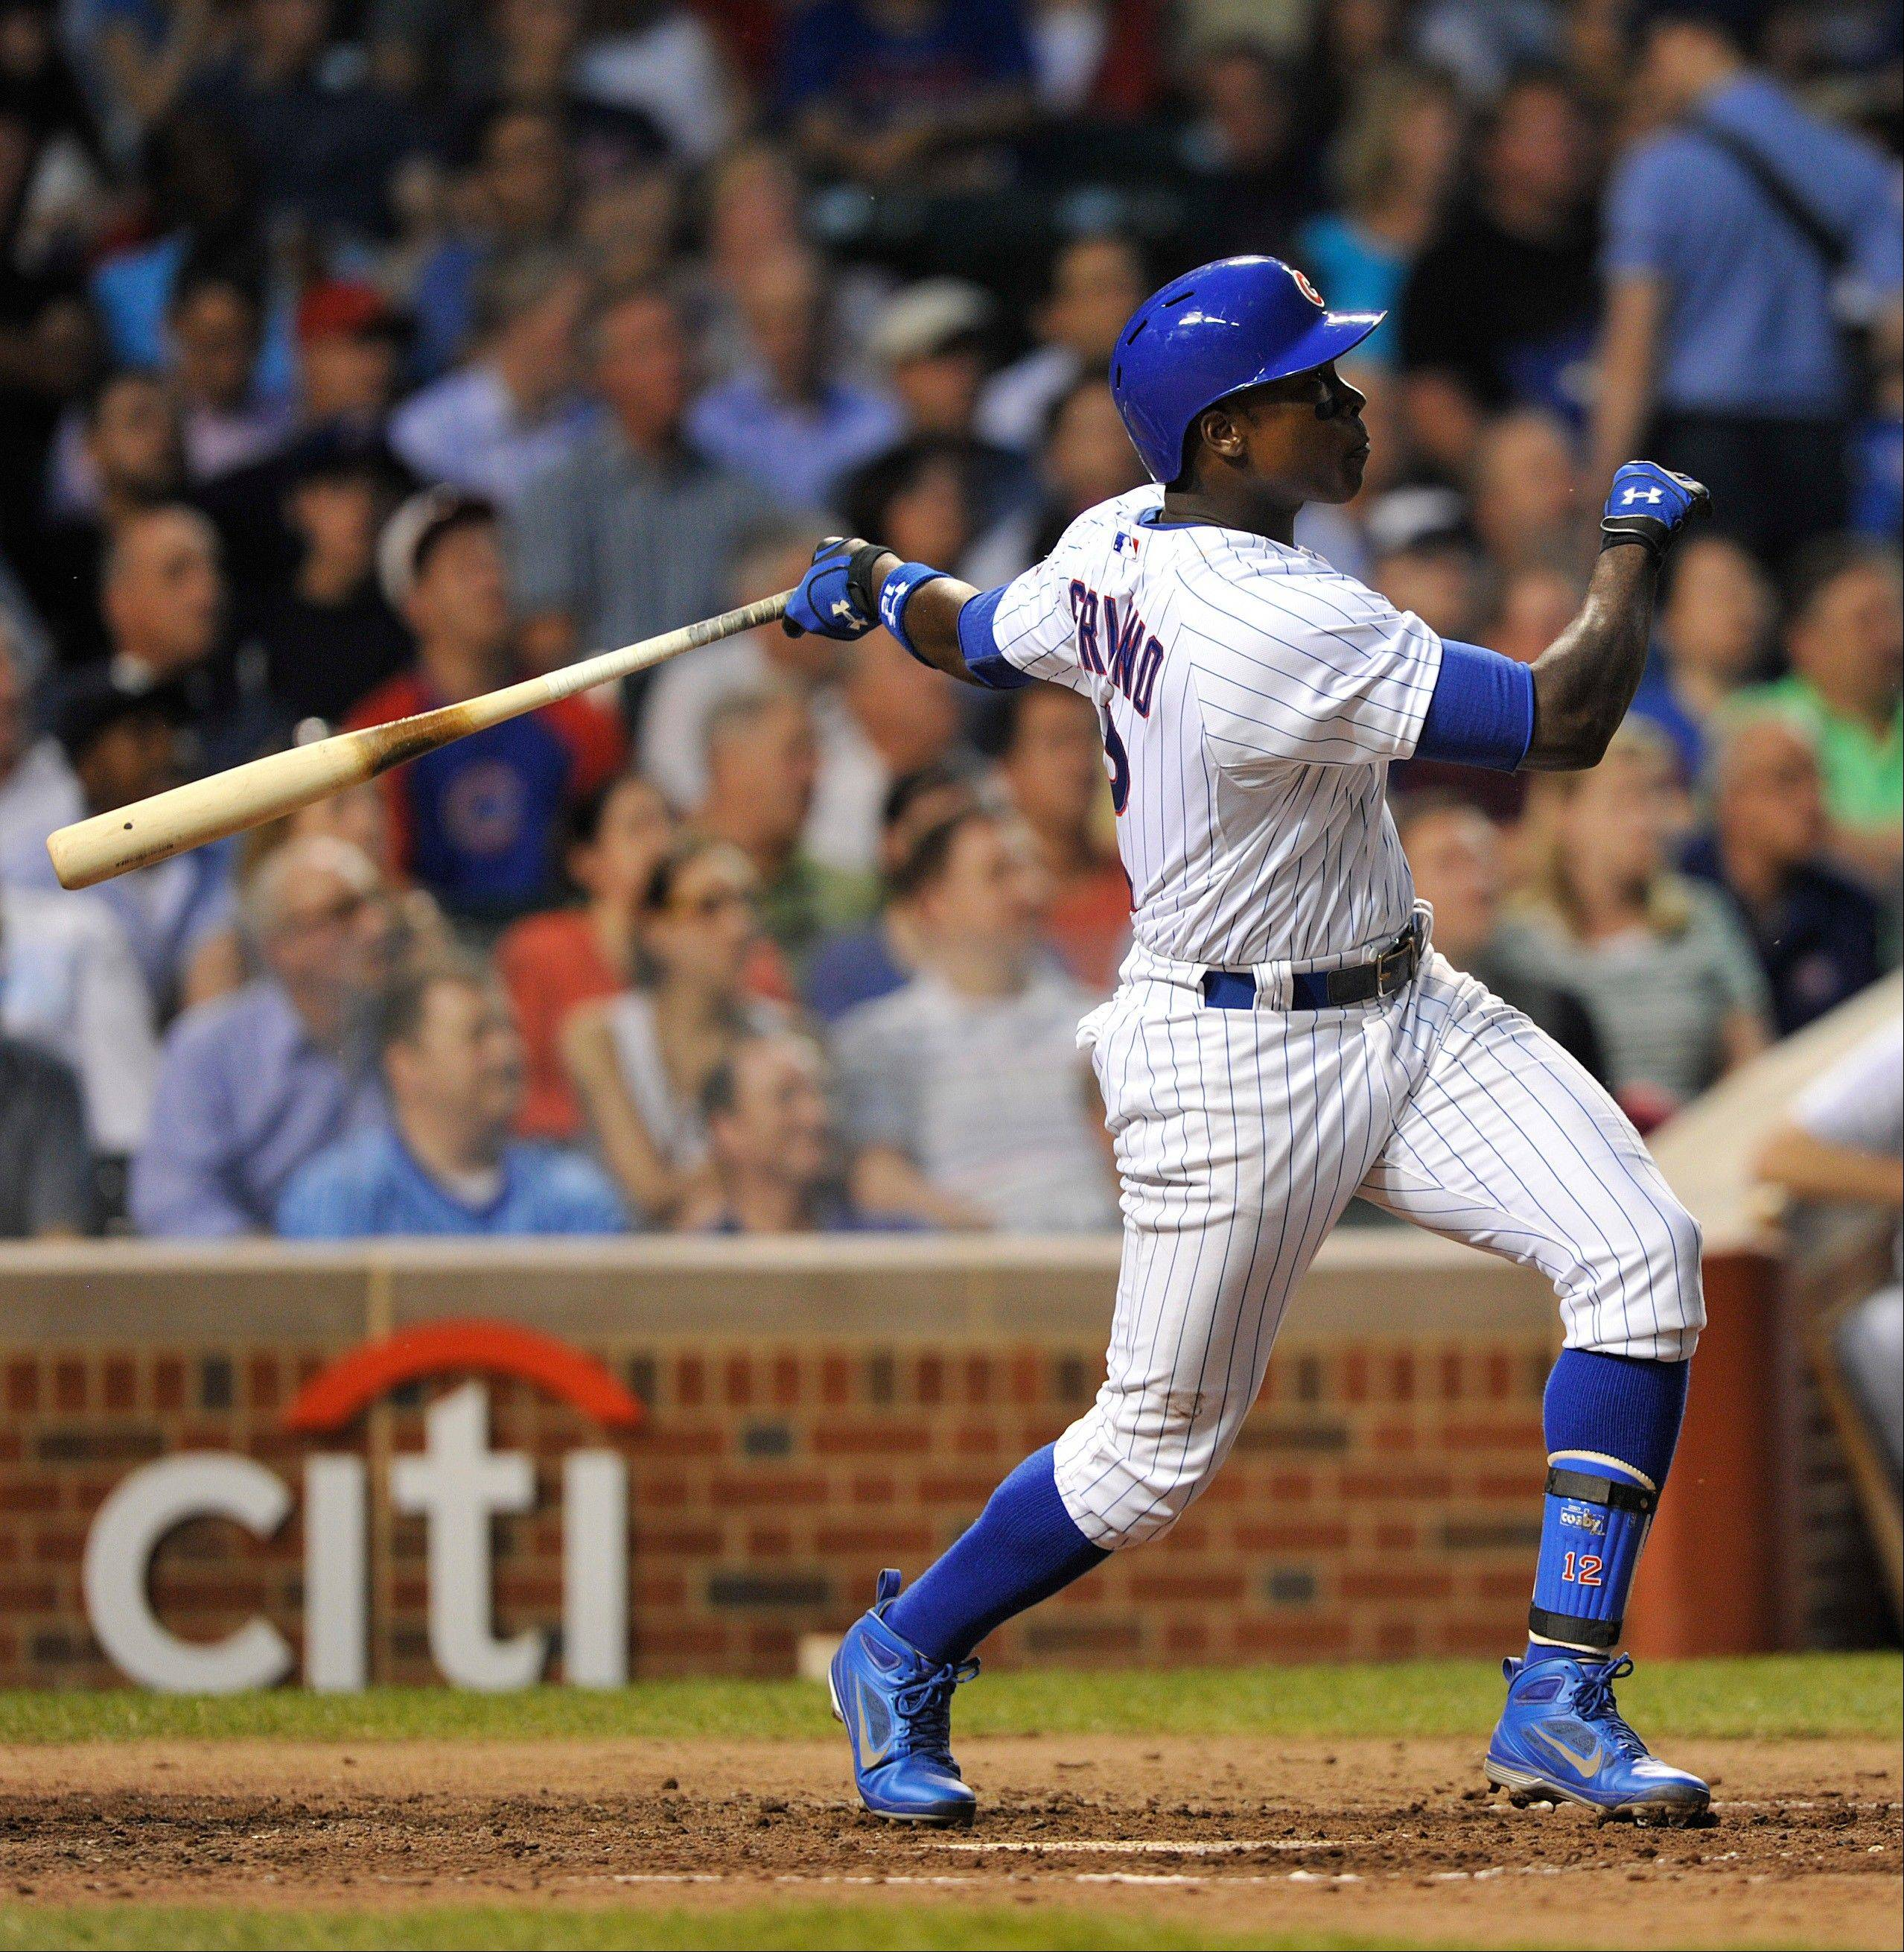 Chicago Cubs' Alfonso Soriano watches his sacrifice fly against the Cincinnati Reds during the fourth inning of a baseball game on Tuesday, June 11, 2013, in Chicago.